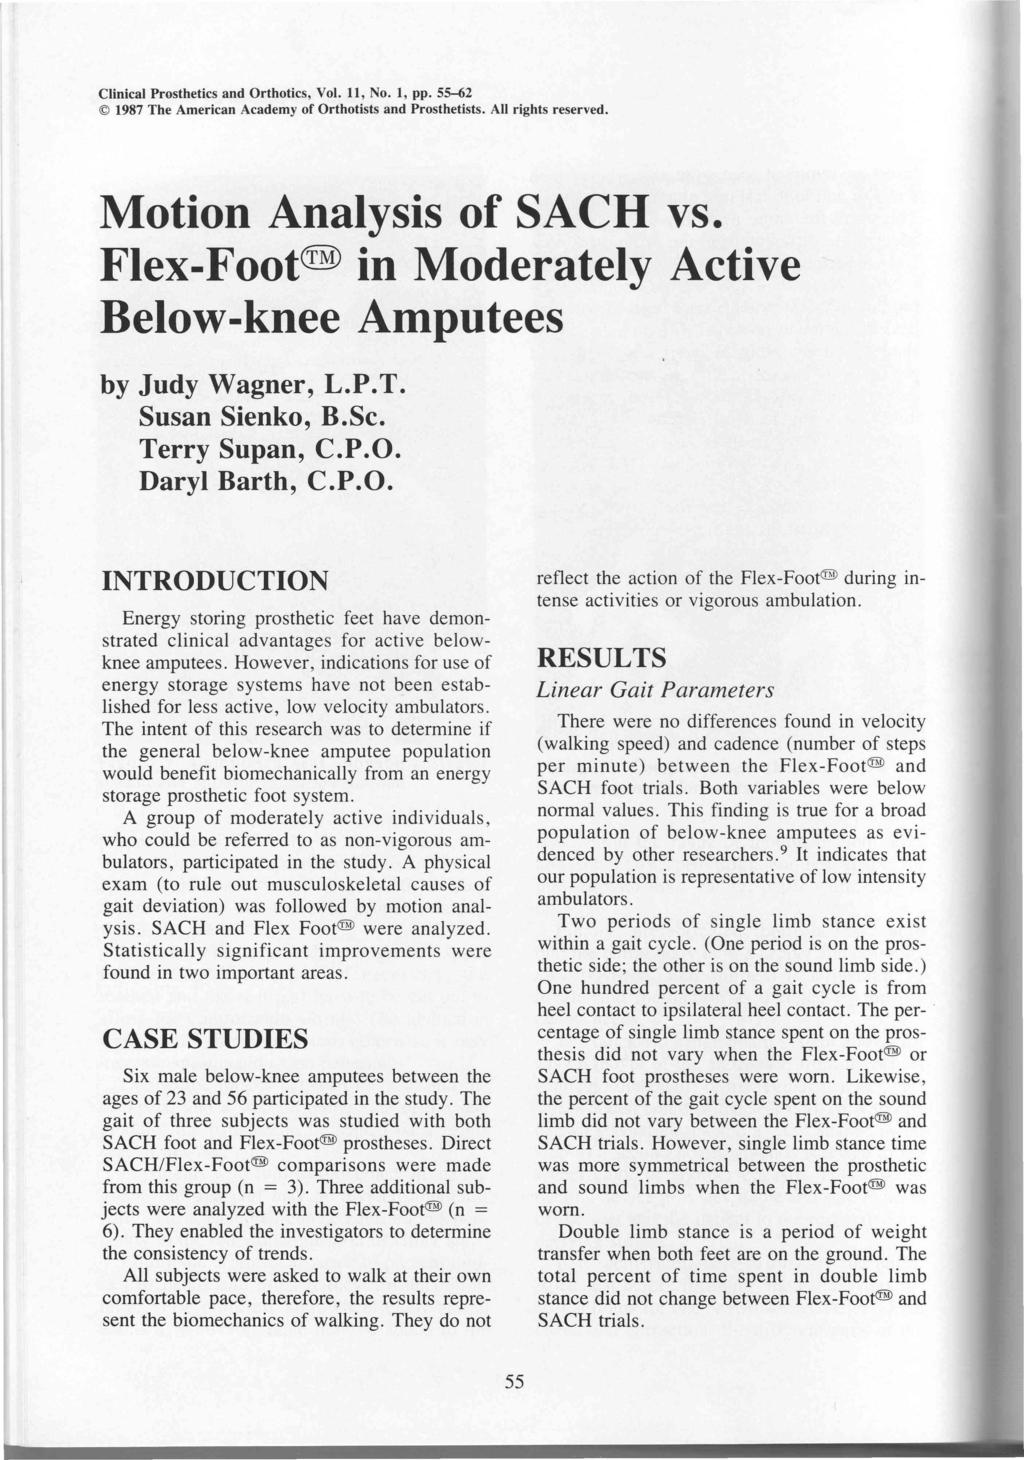 Motion Analysis of S ACH vs. Flex-Foot(tm) in Moderately Active Below-knee Amputees by Judy Wagner, L.P.T. Susan Sienko, B.Sc. Terry Supan, C.P.O.